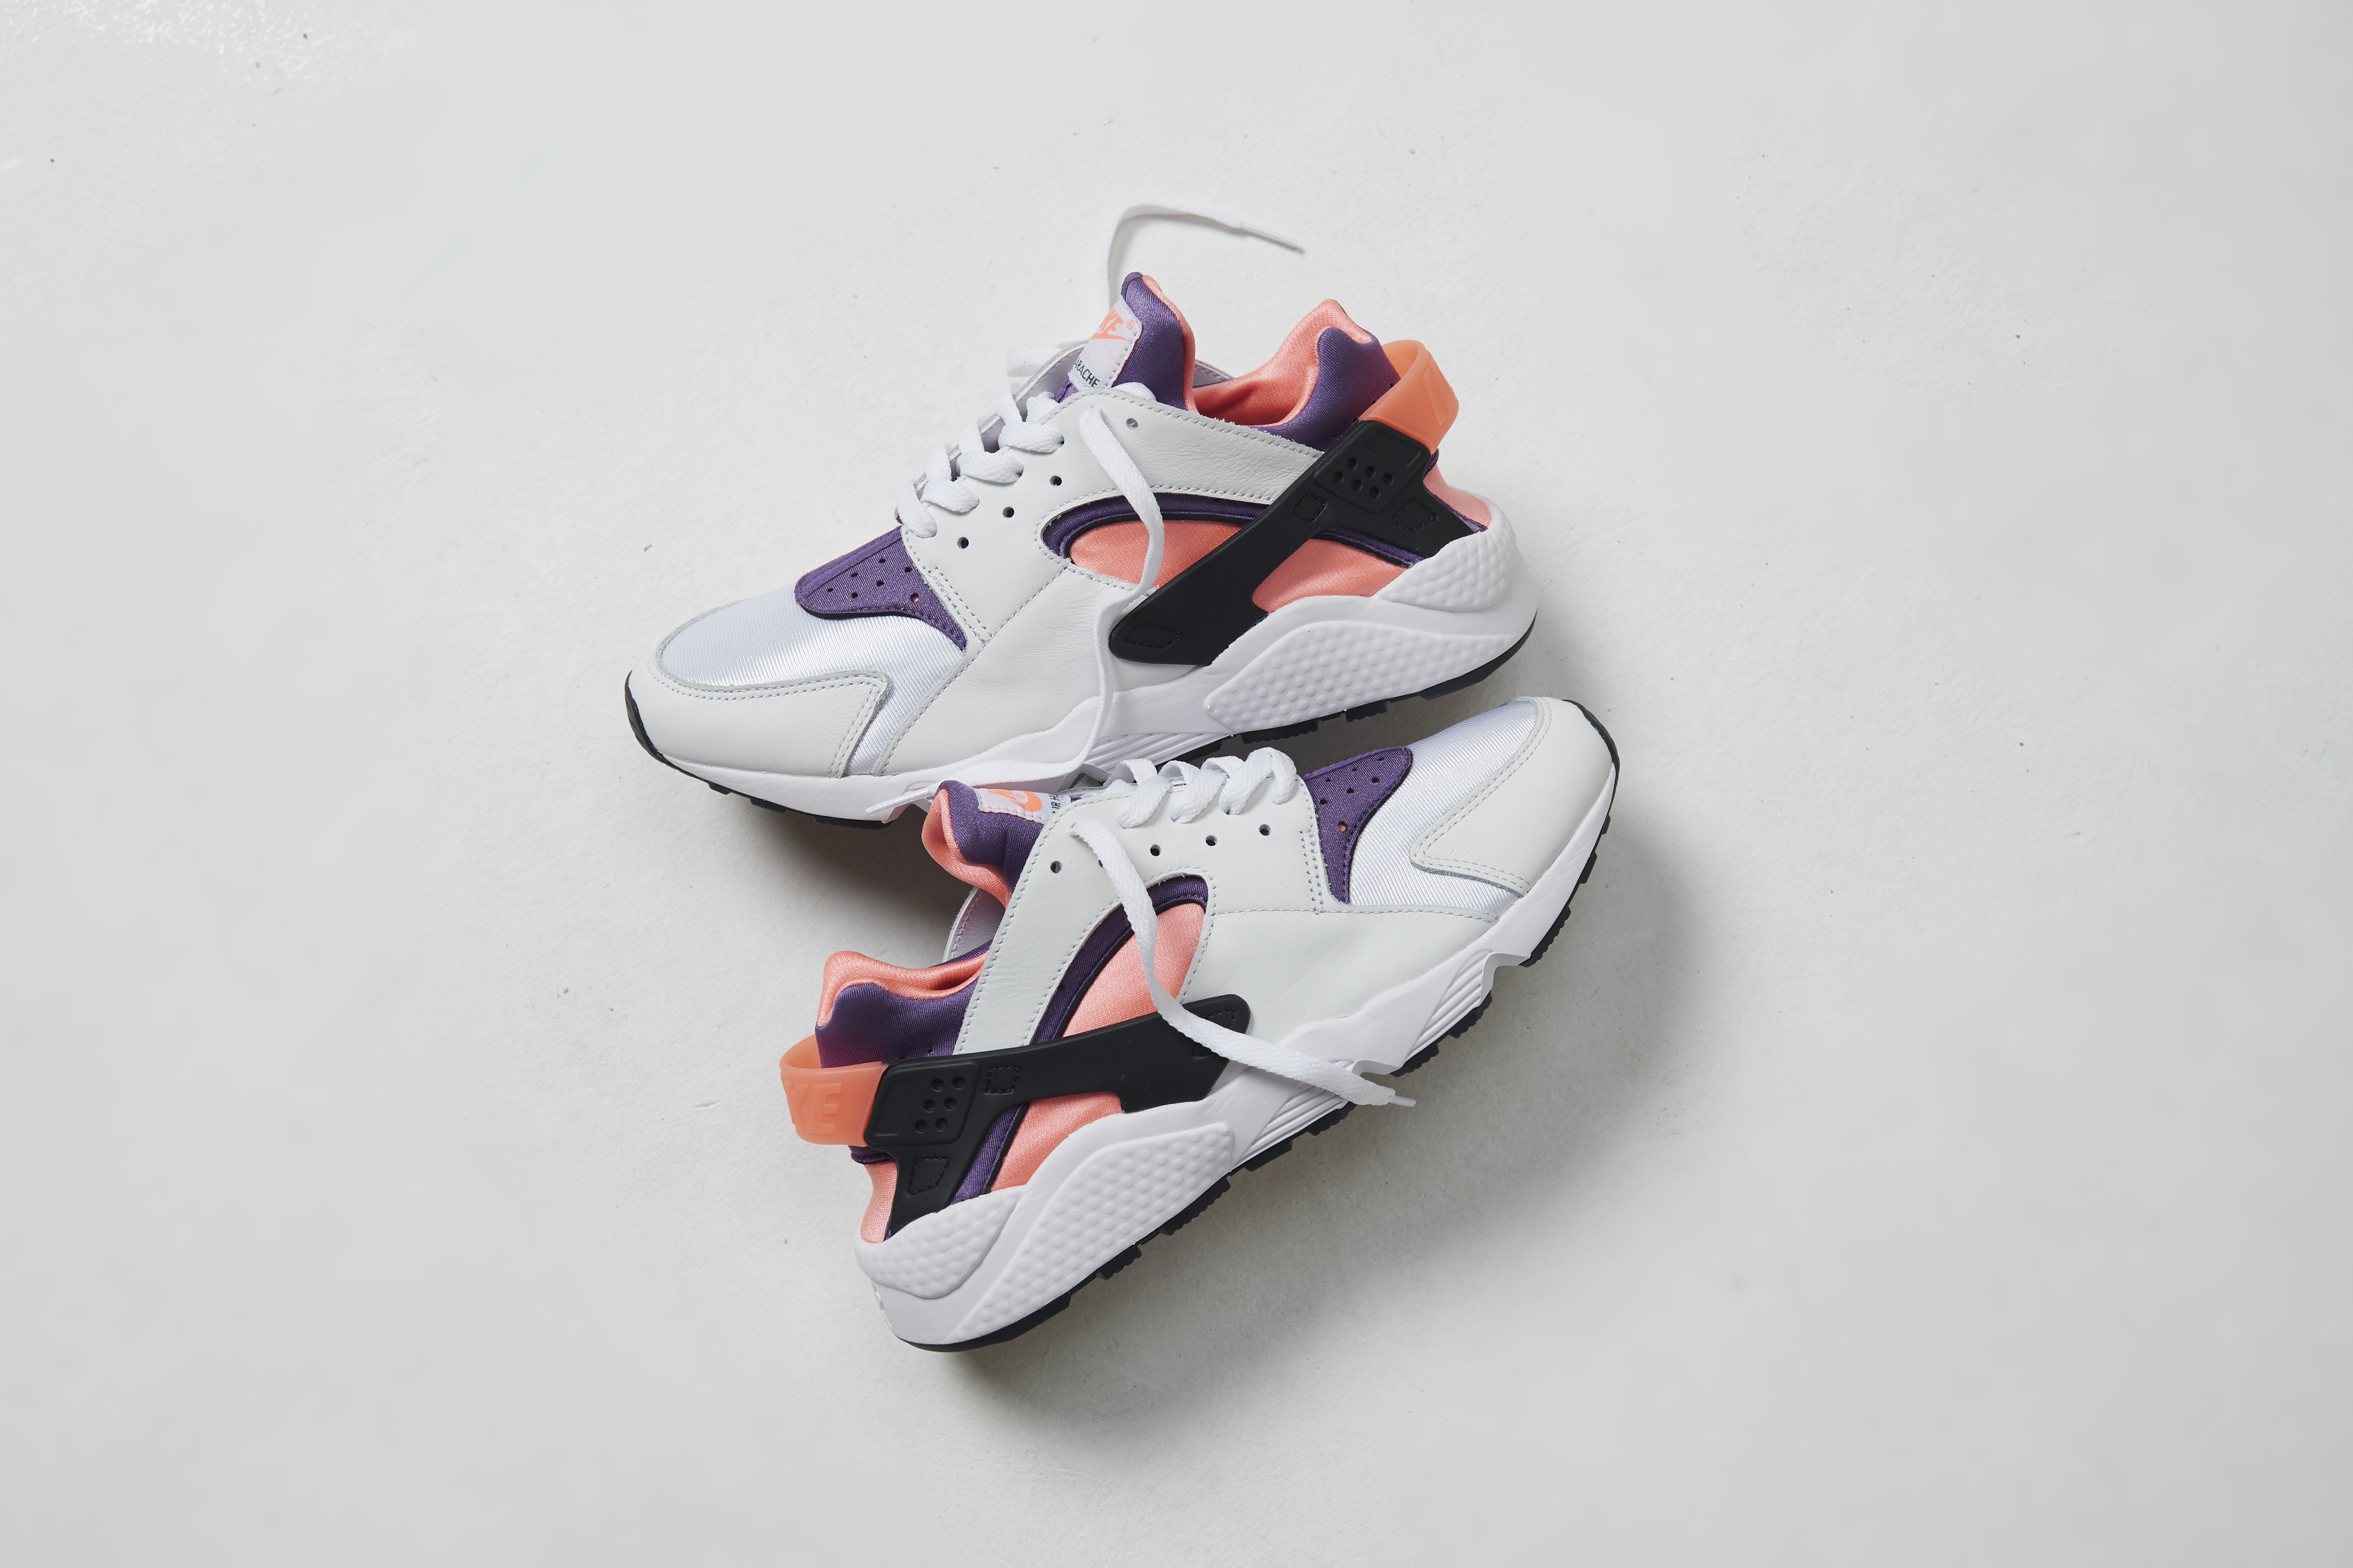 Check out the Nike Huarache in a 'Bright Mango' colourway